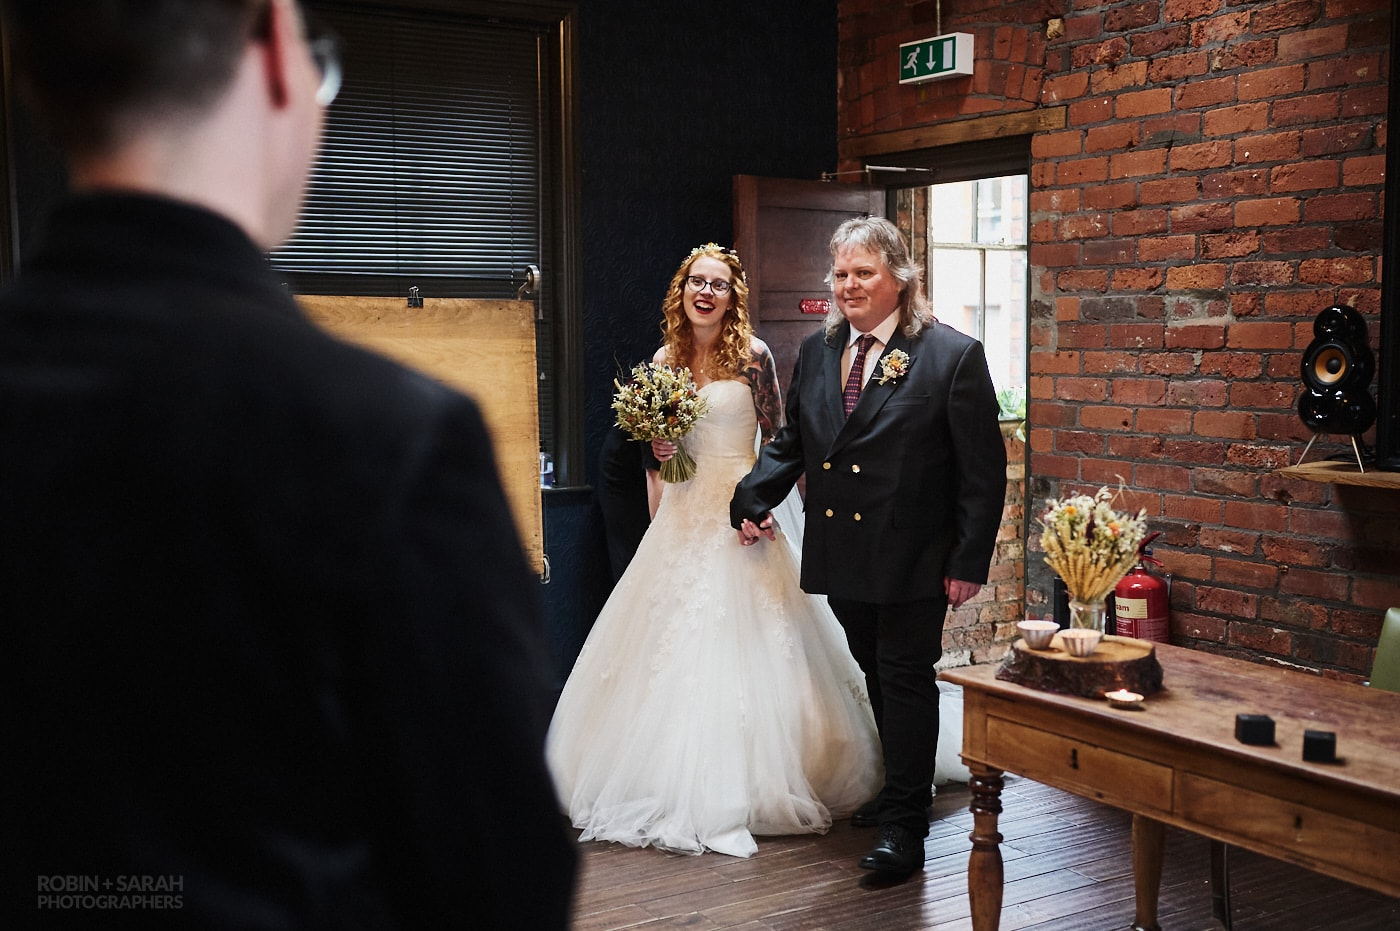 Bride and dad enter wedding ceremony at The Chimney House